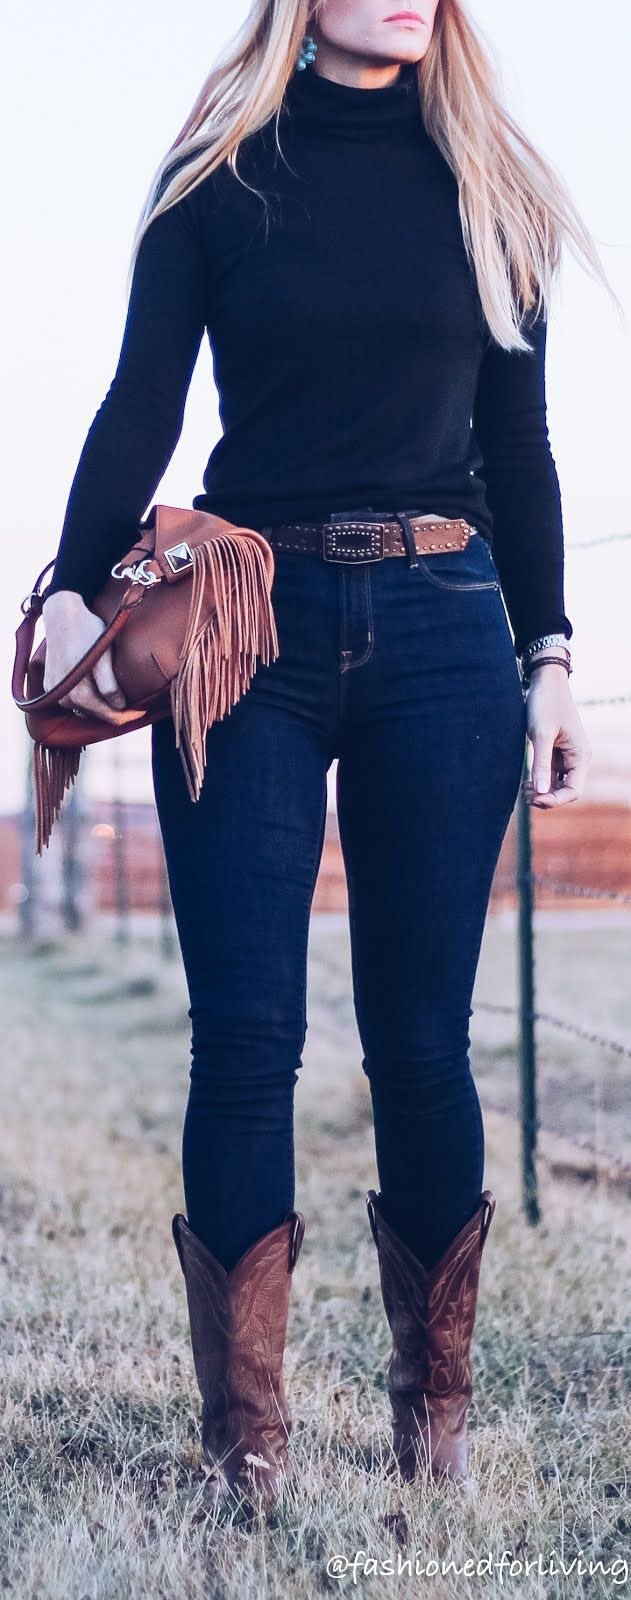 High Waisted Jeans Outfit With Cowboy Boots And Black Turtleneck | Cowboy Boots Outfits U0026 More ...